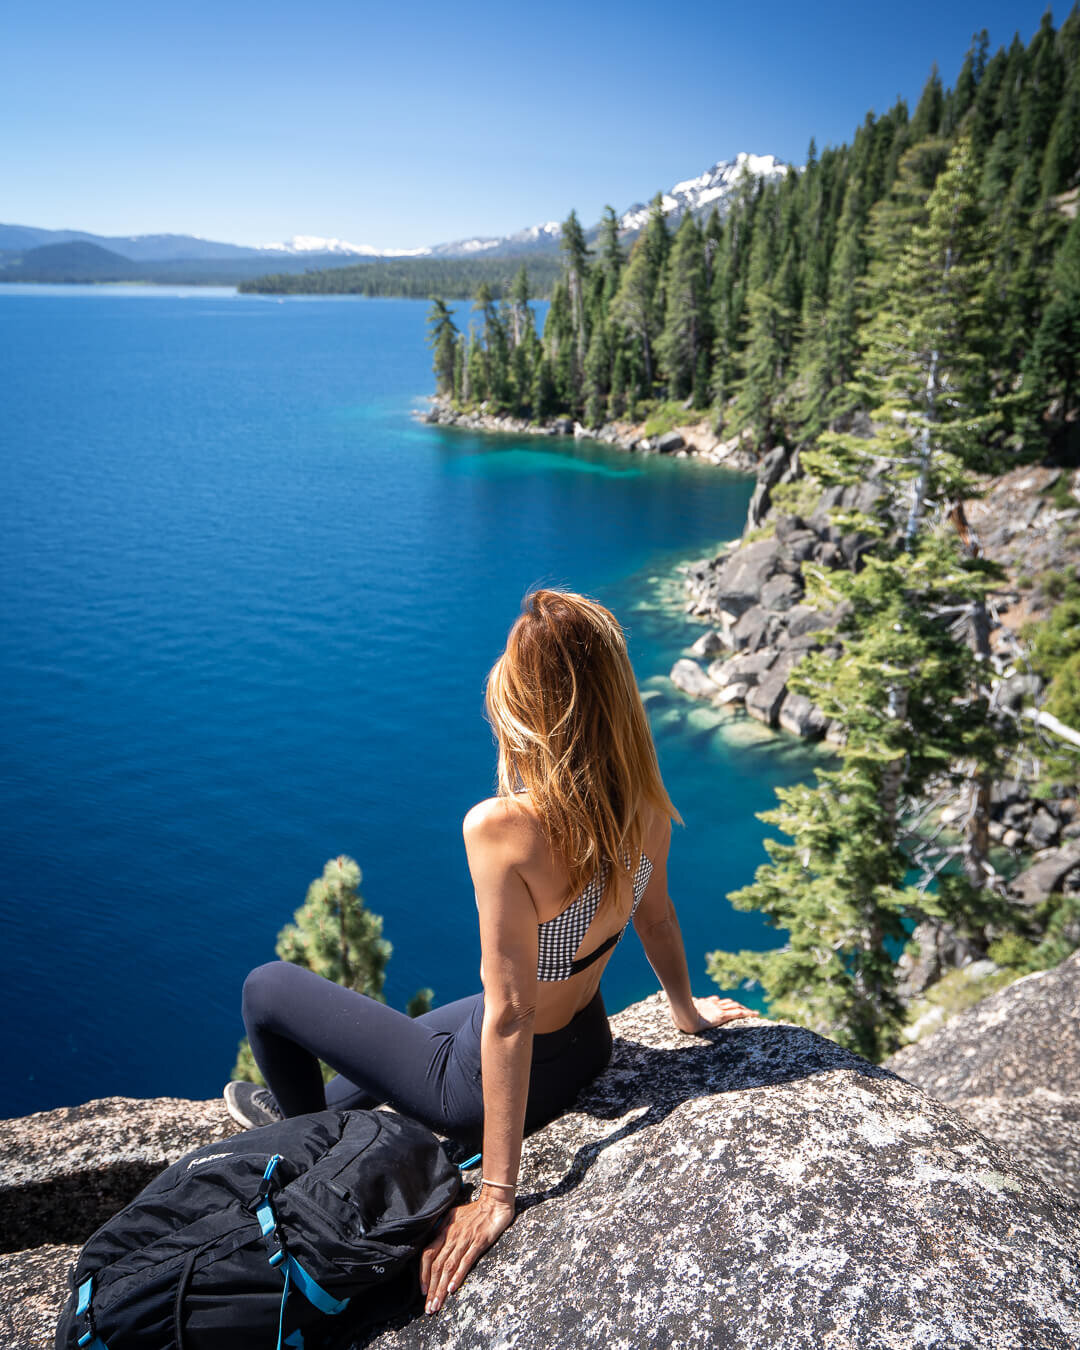 Views from the Rubicon Trail at D.L. Bliss State Park, Lake Tahoe.